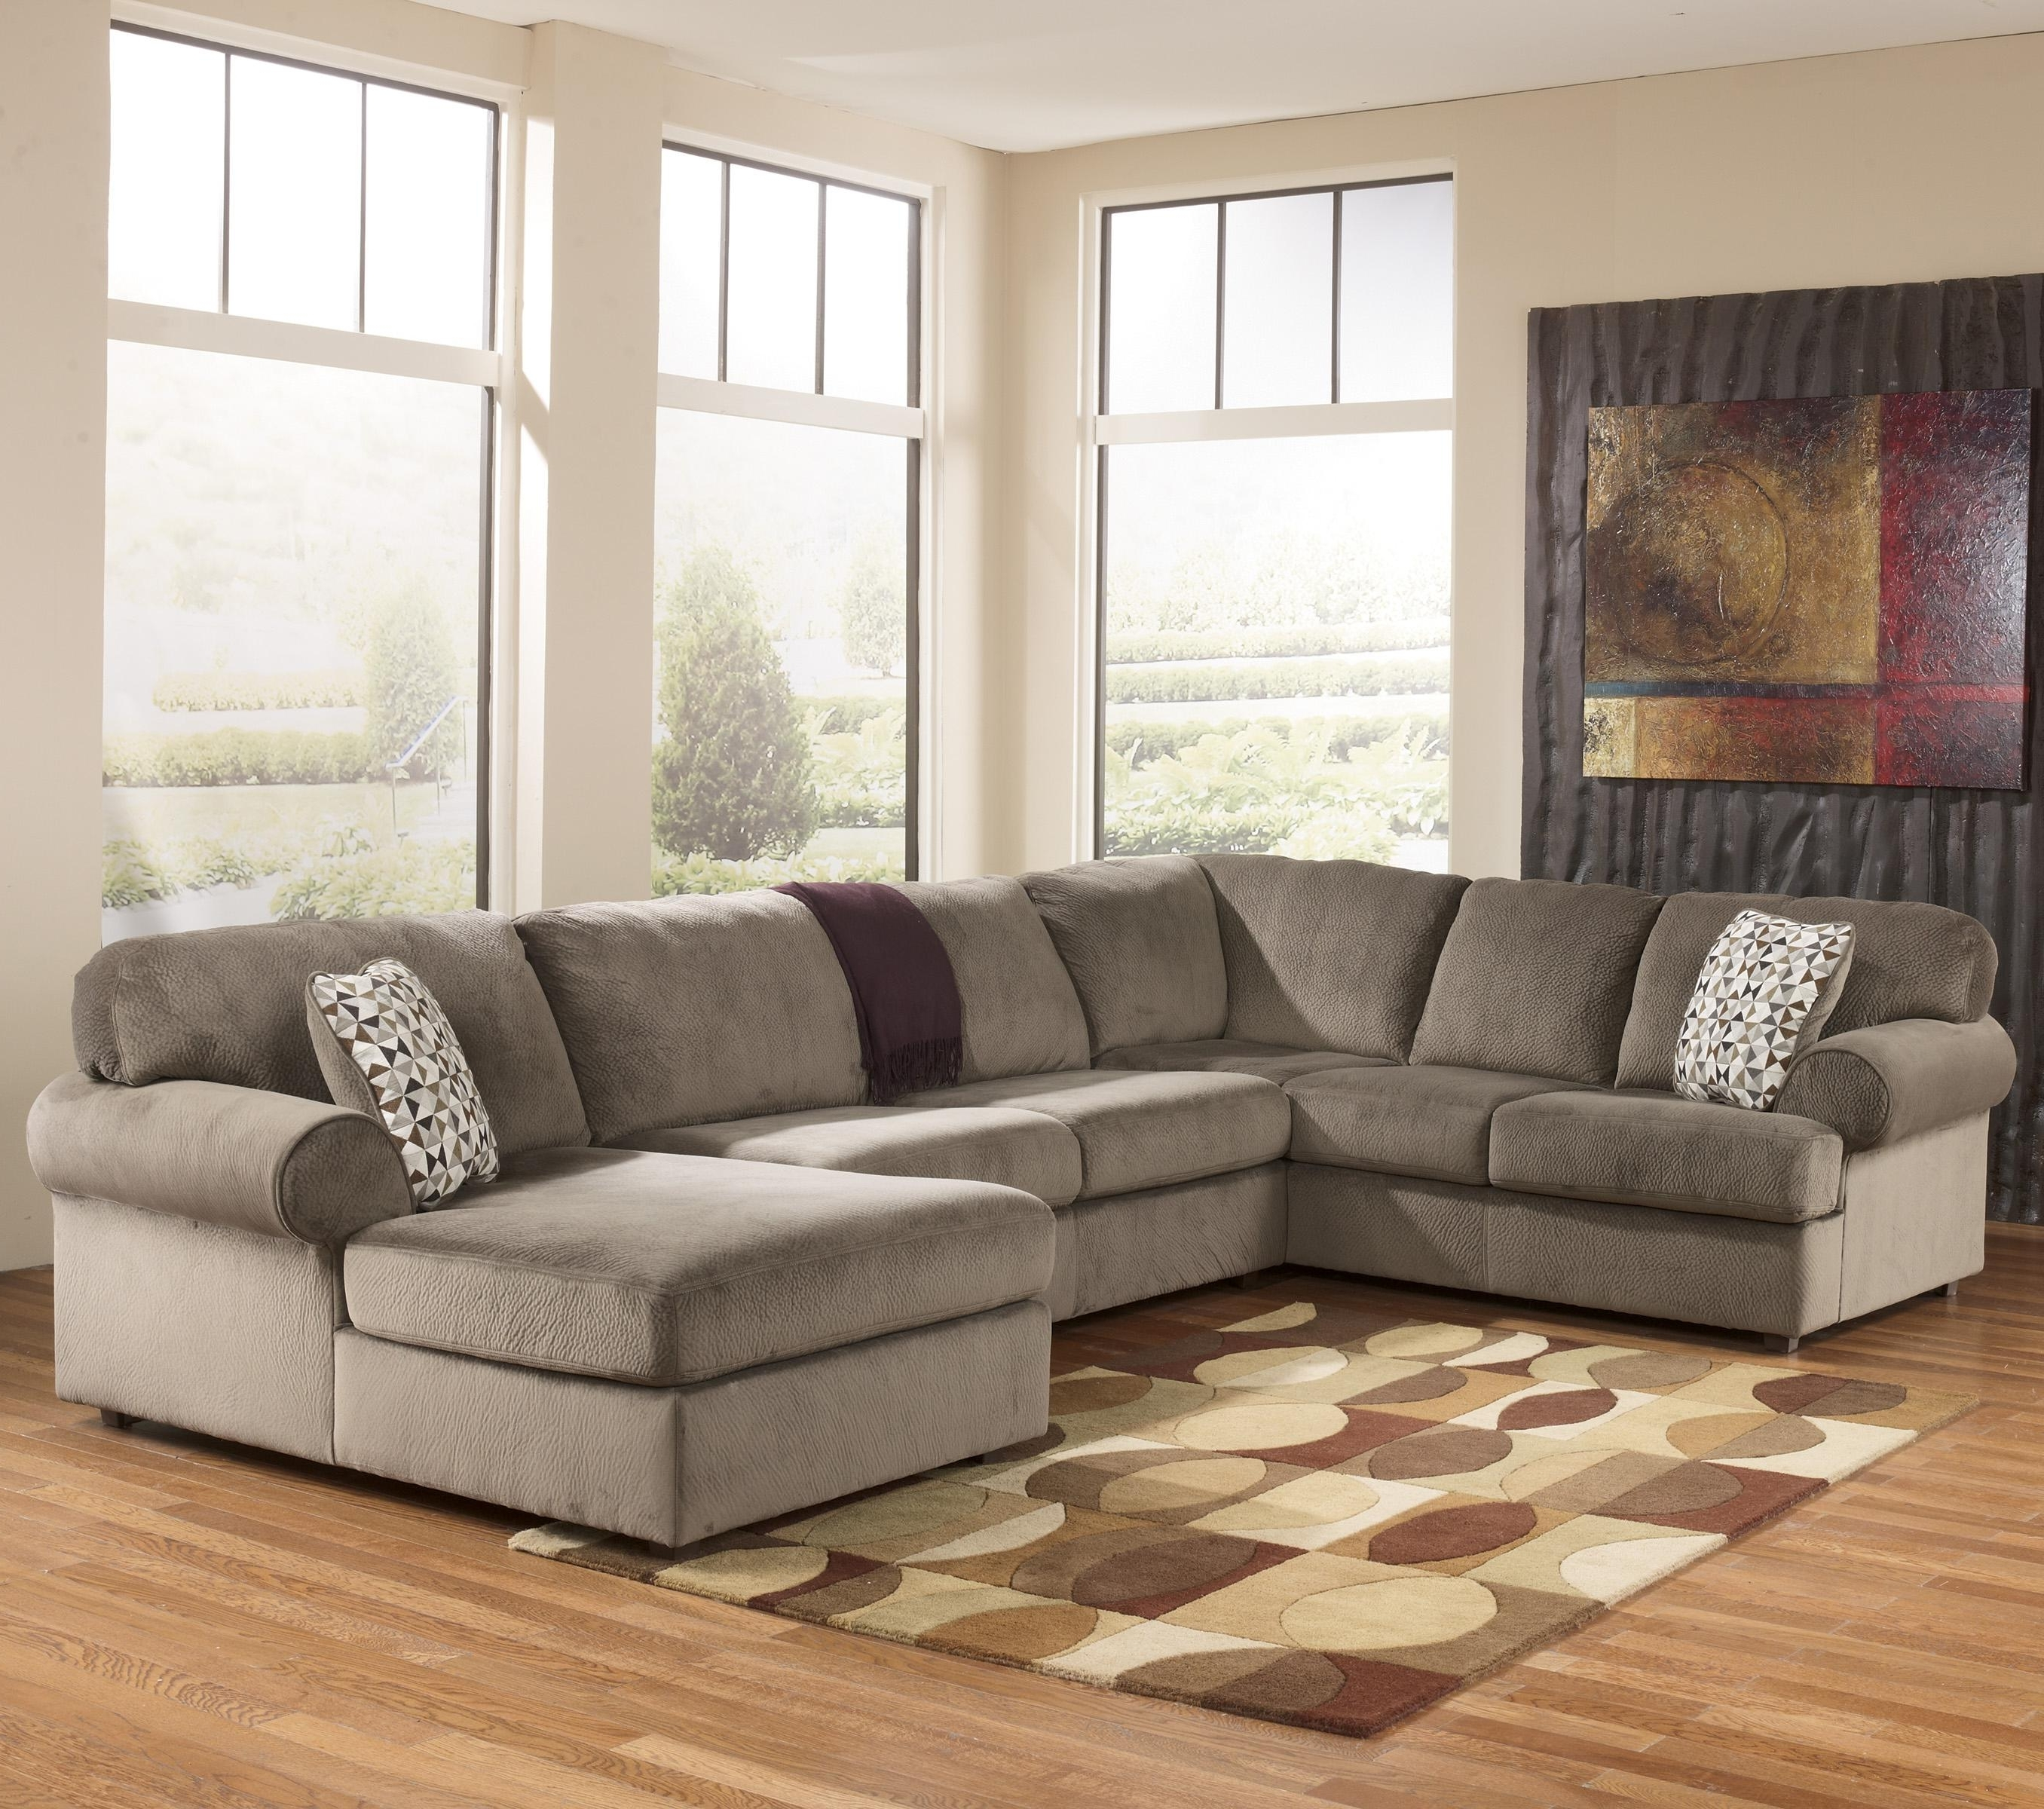 Fashionable El Paso Sectional Sofas Throughout Signature Designashley Jessa Place – Dune Casual Sectional (View 9 of 20)